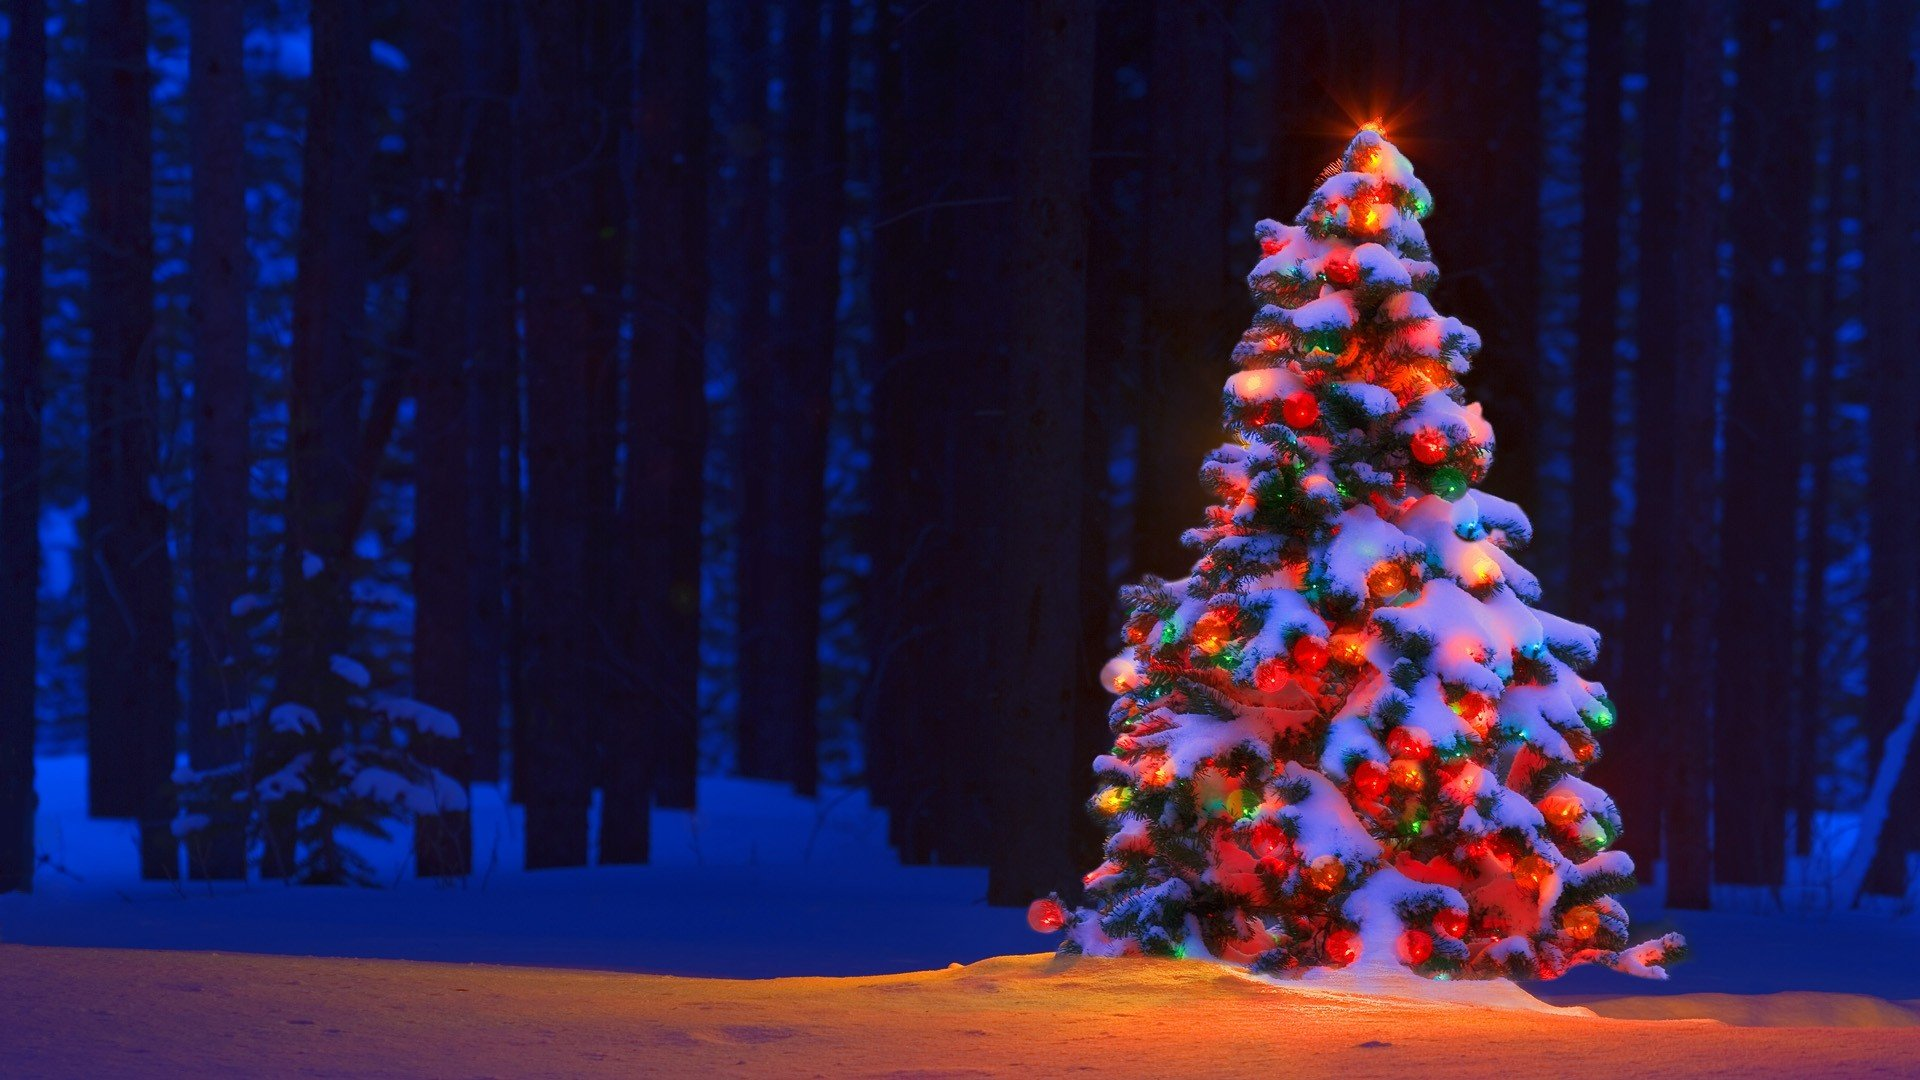 Christmas Tree Decorations Wallpapers